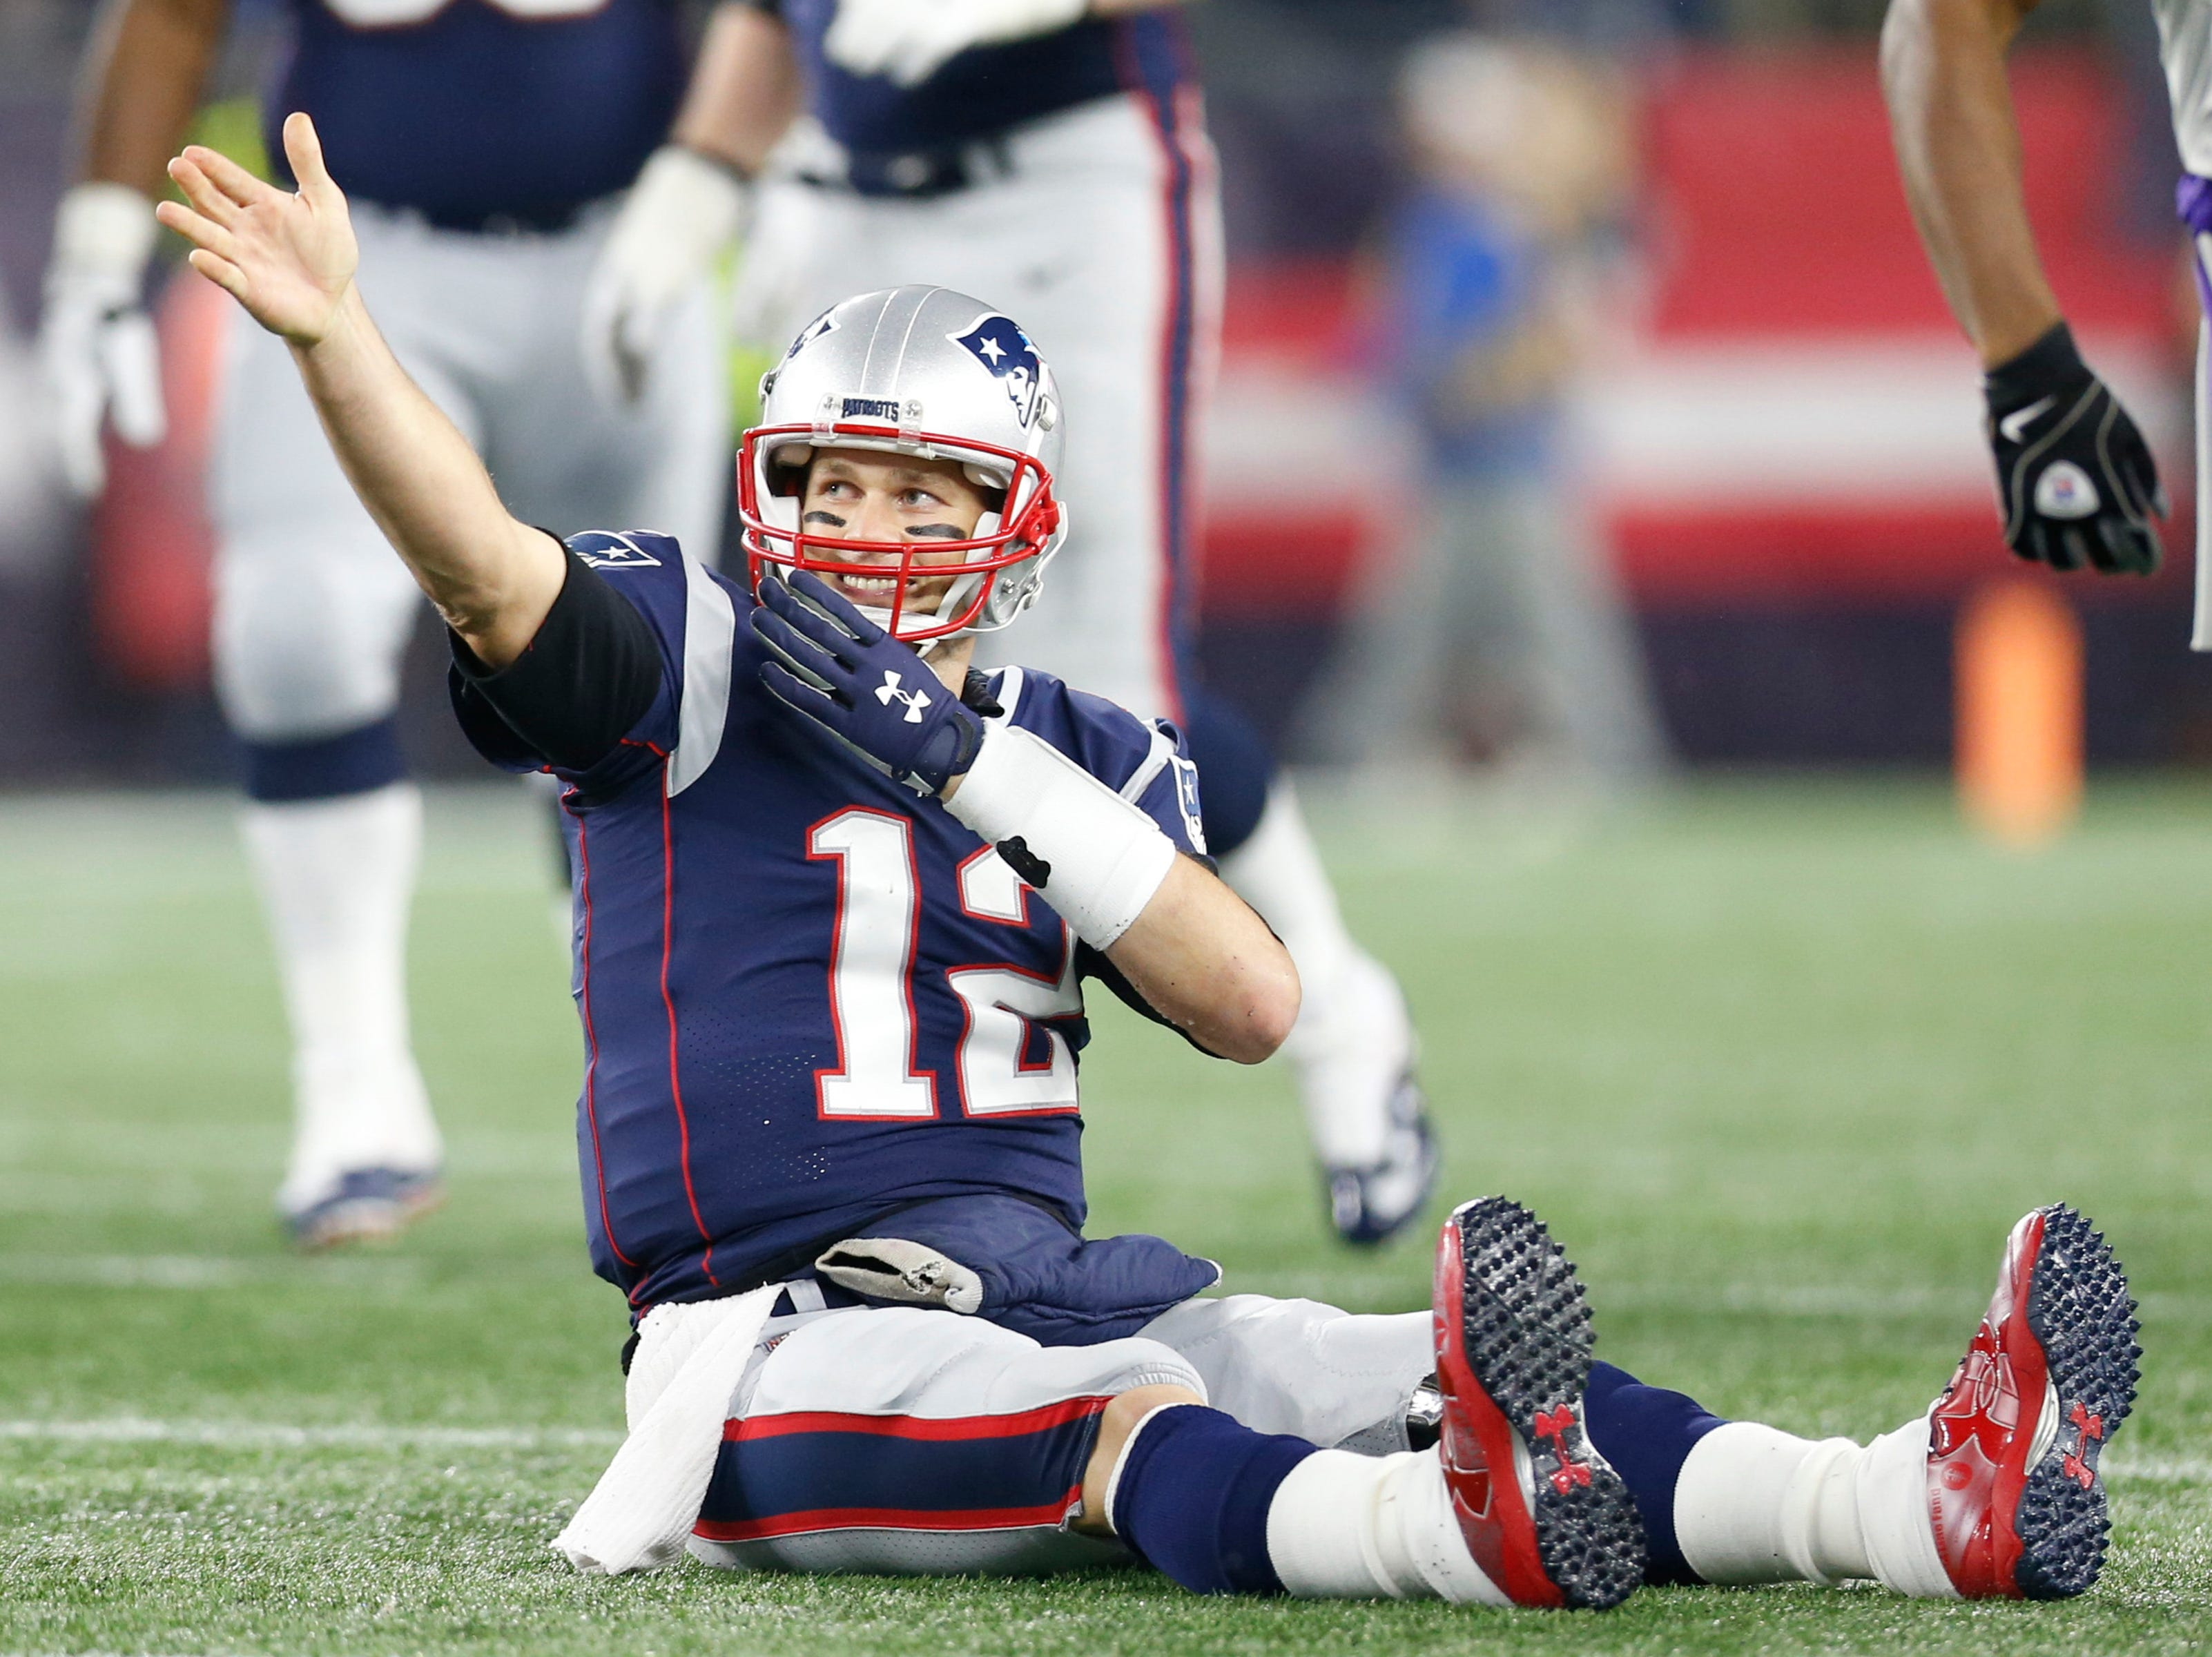 Tom Brady reacts after rushing for a first down against the Vikings.